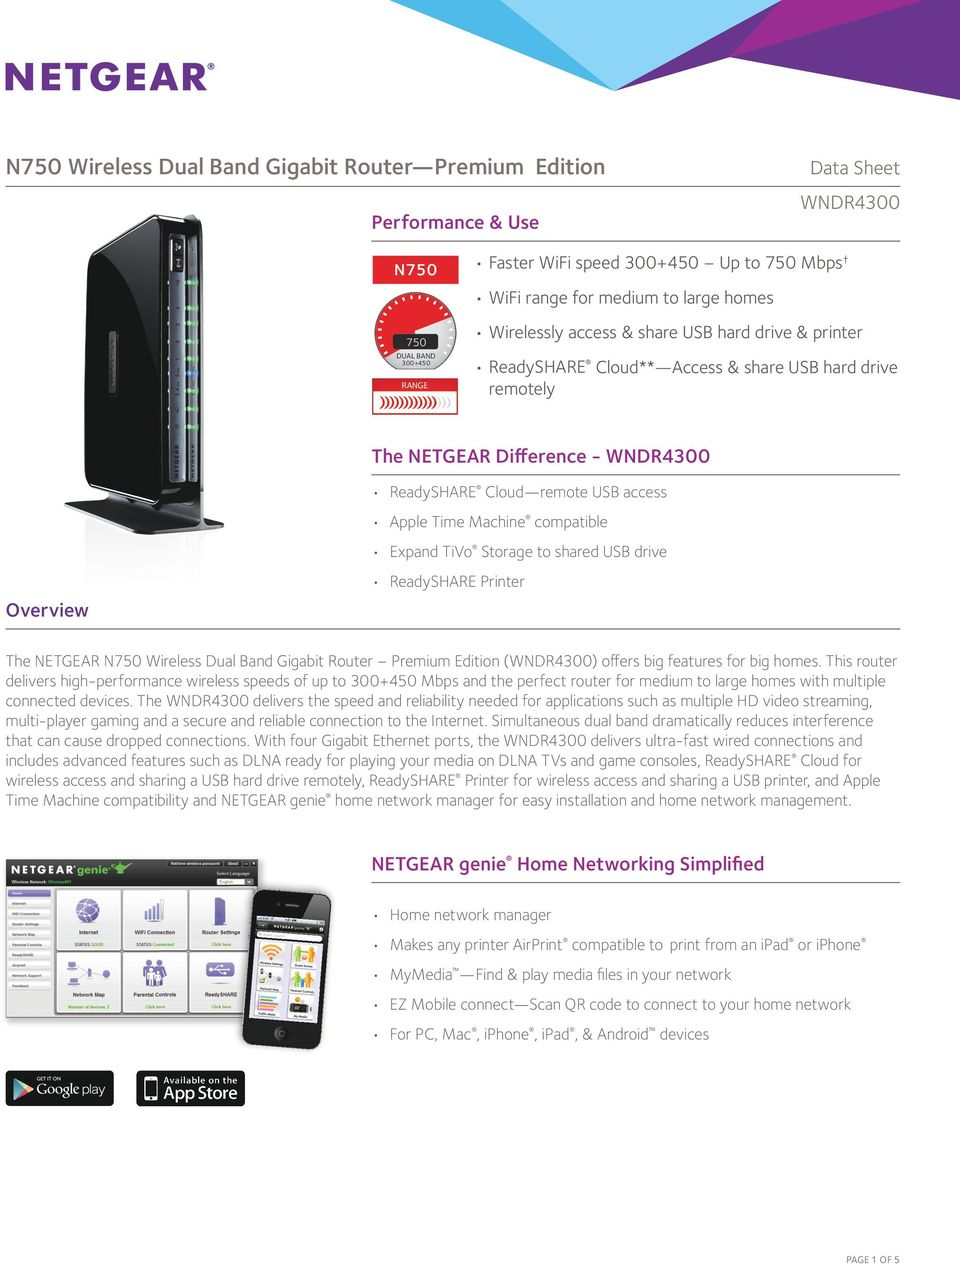 The NETGEAR N750 Wireless Dual Band Gigabit Router Premium Edition () offers big features for big homes.